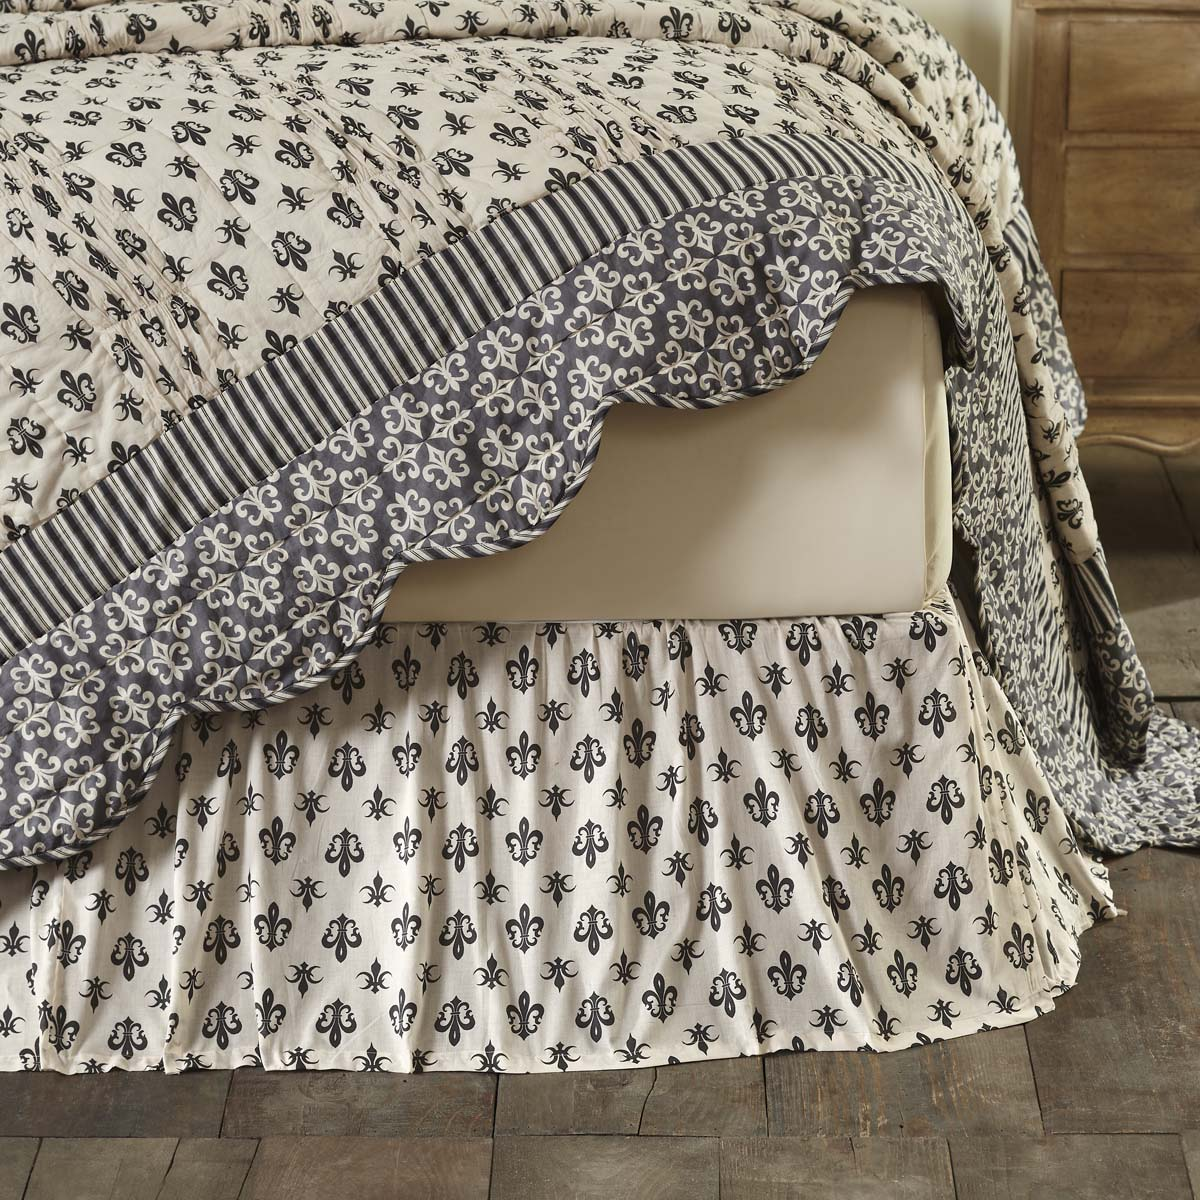 Elysee Twin Bed Skirt 39x76x16 - Woodrol